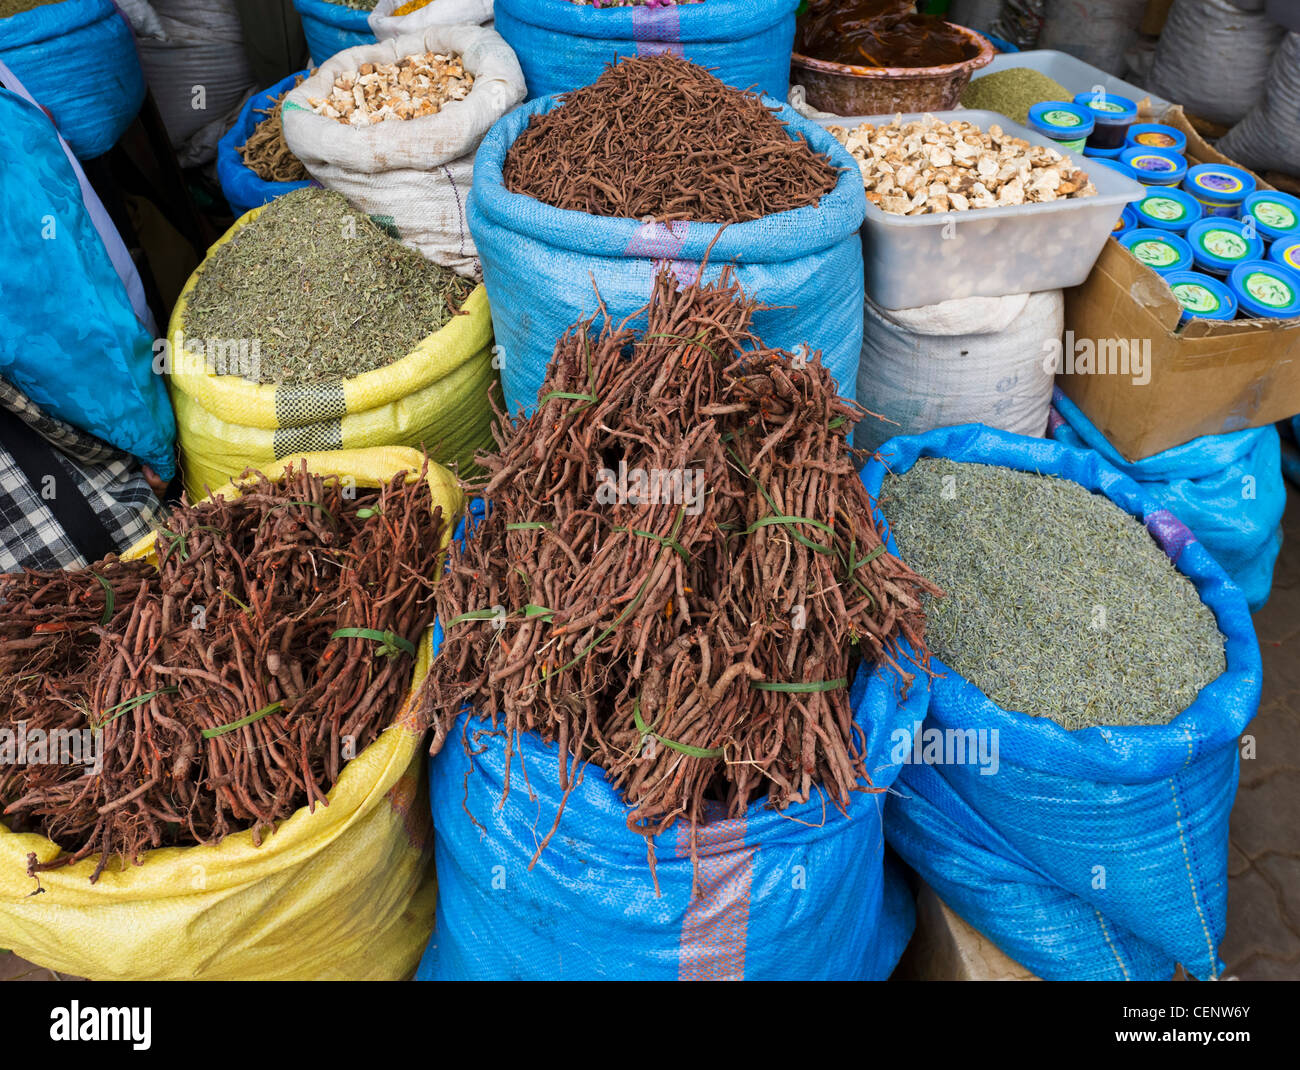 Herbs and spices for sale in Rahba Kedima (Place des Epices), Medina, Marrakech, Morocco, North Africa Stock Photo